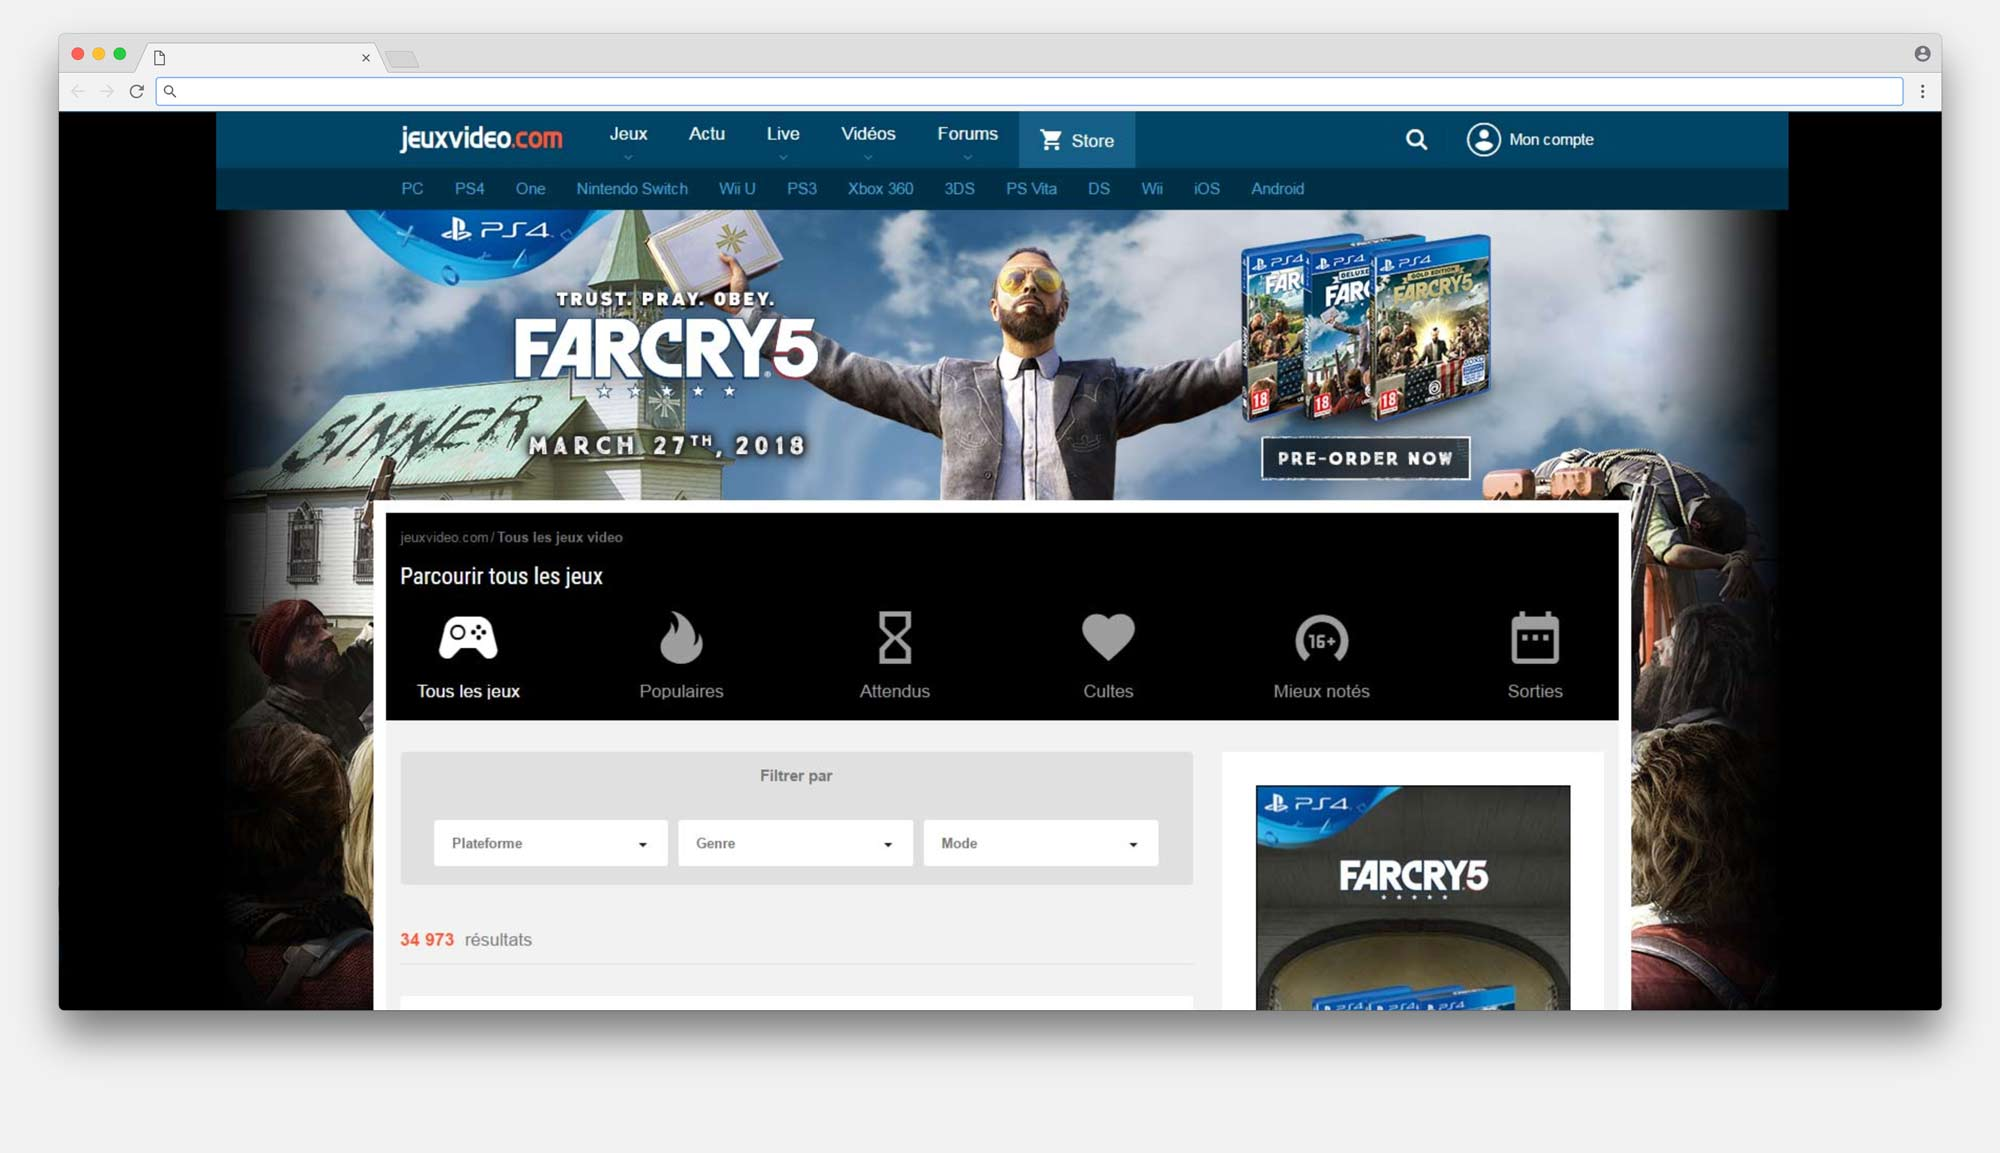 Farcry5 Homepage Takeover